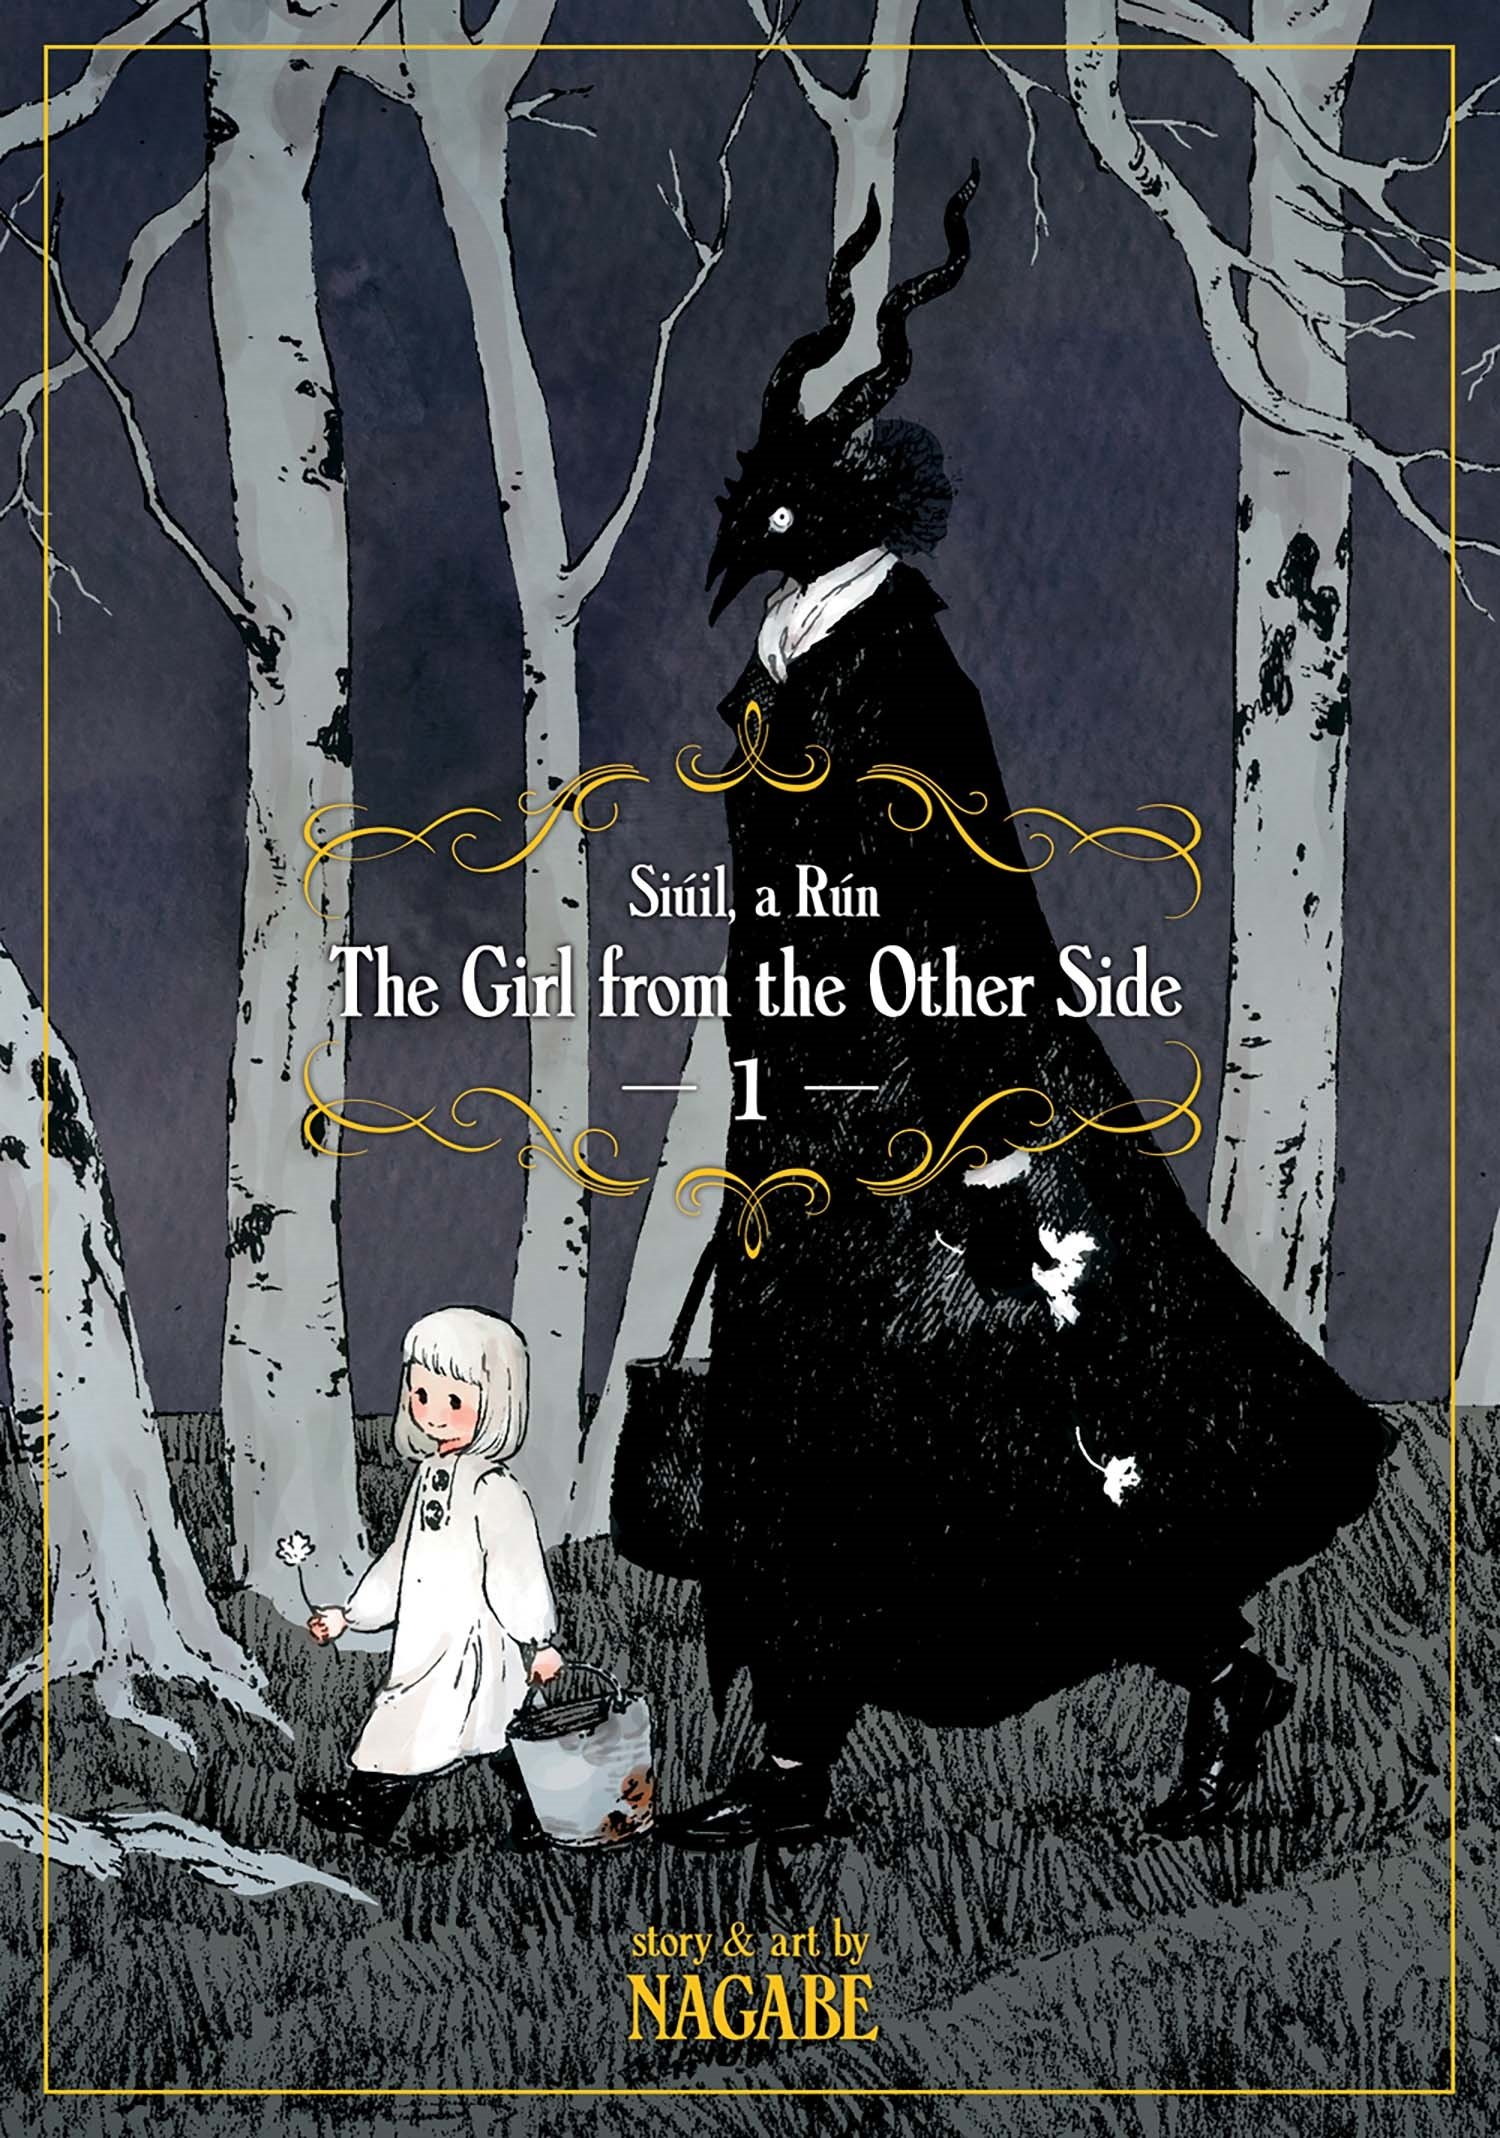 The Girl From the Other Side: Siúil, a Rún, Vol. 1